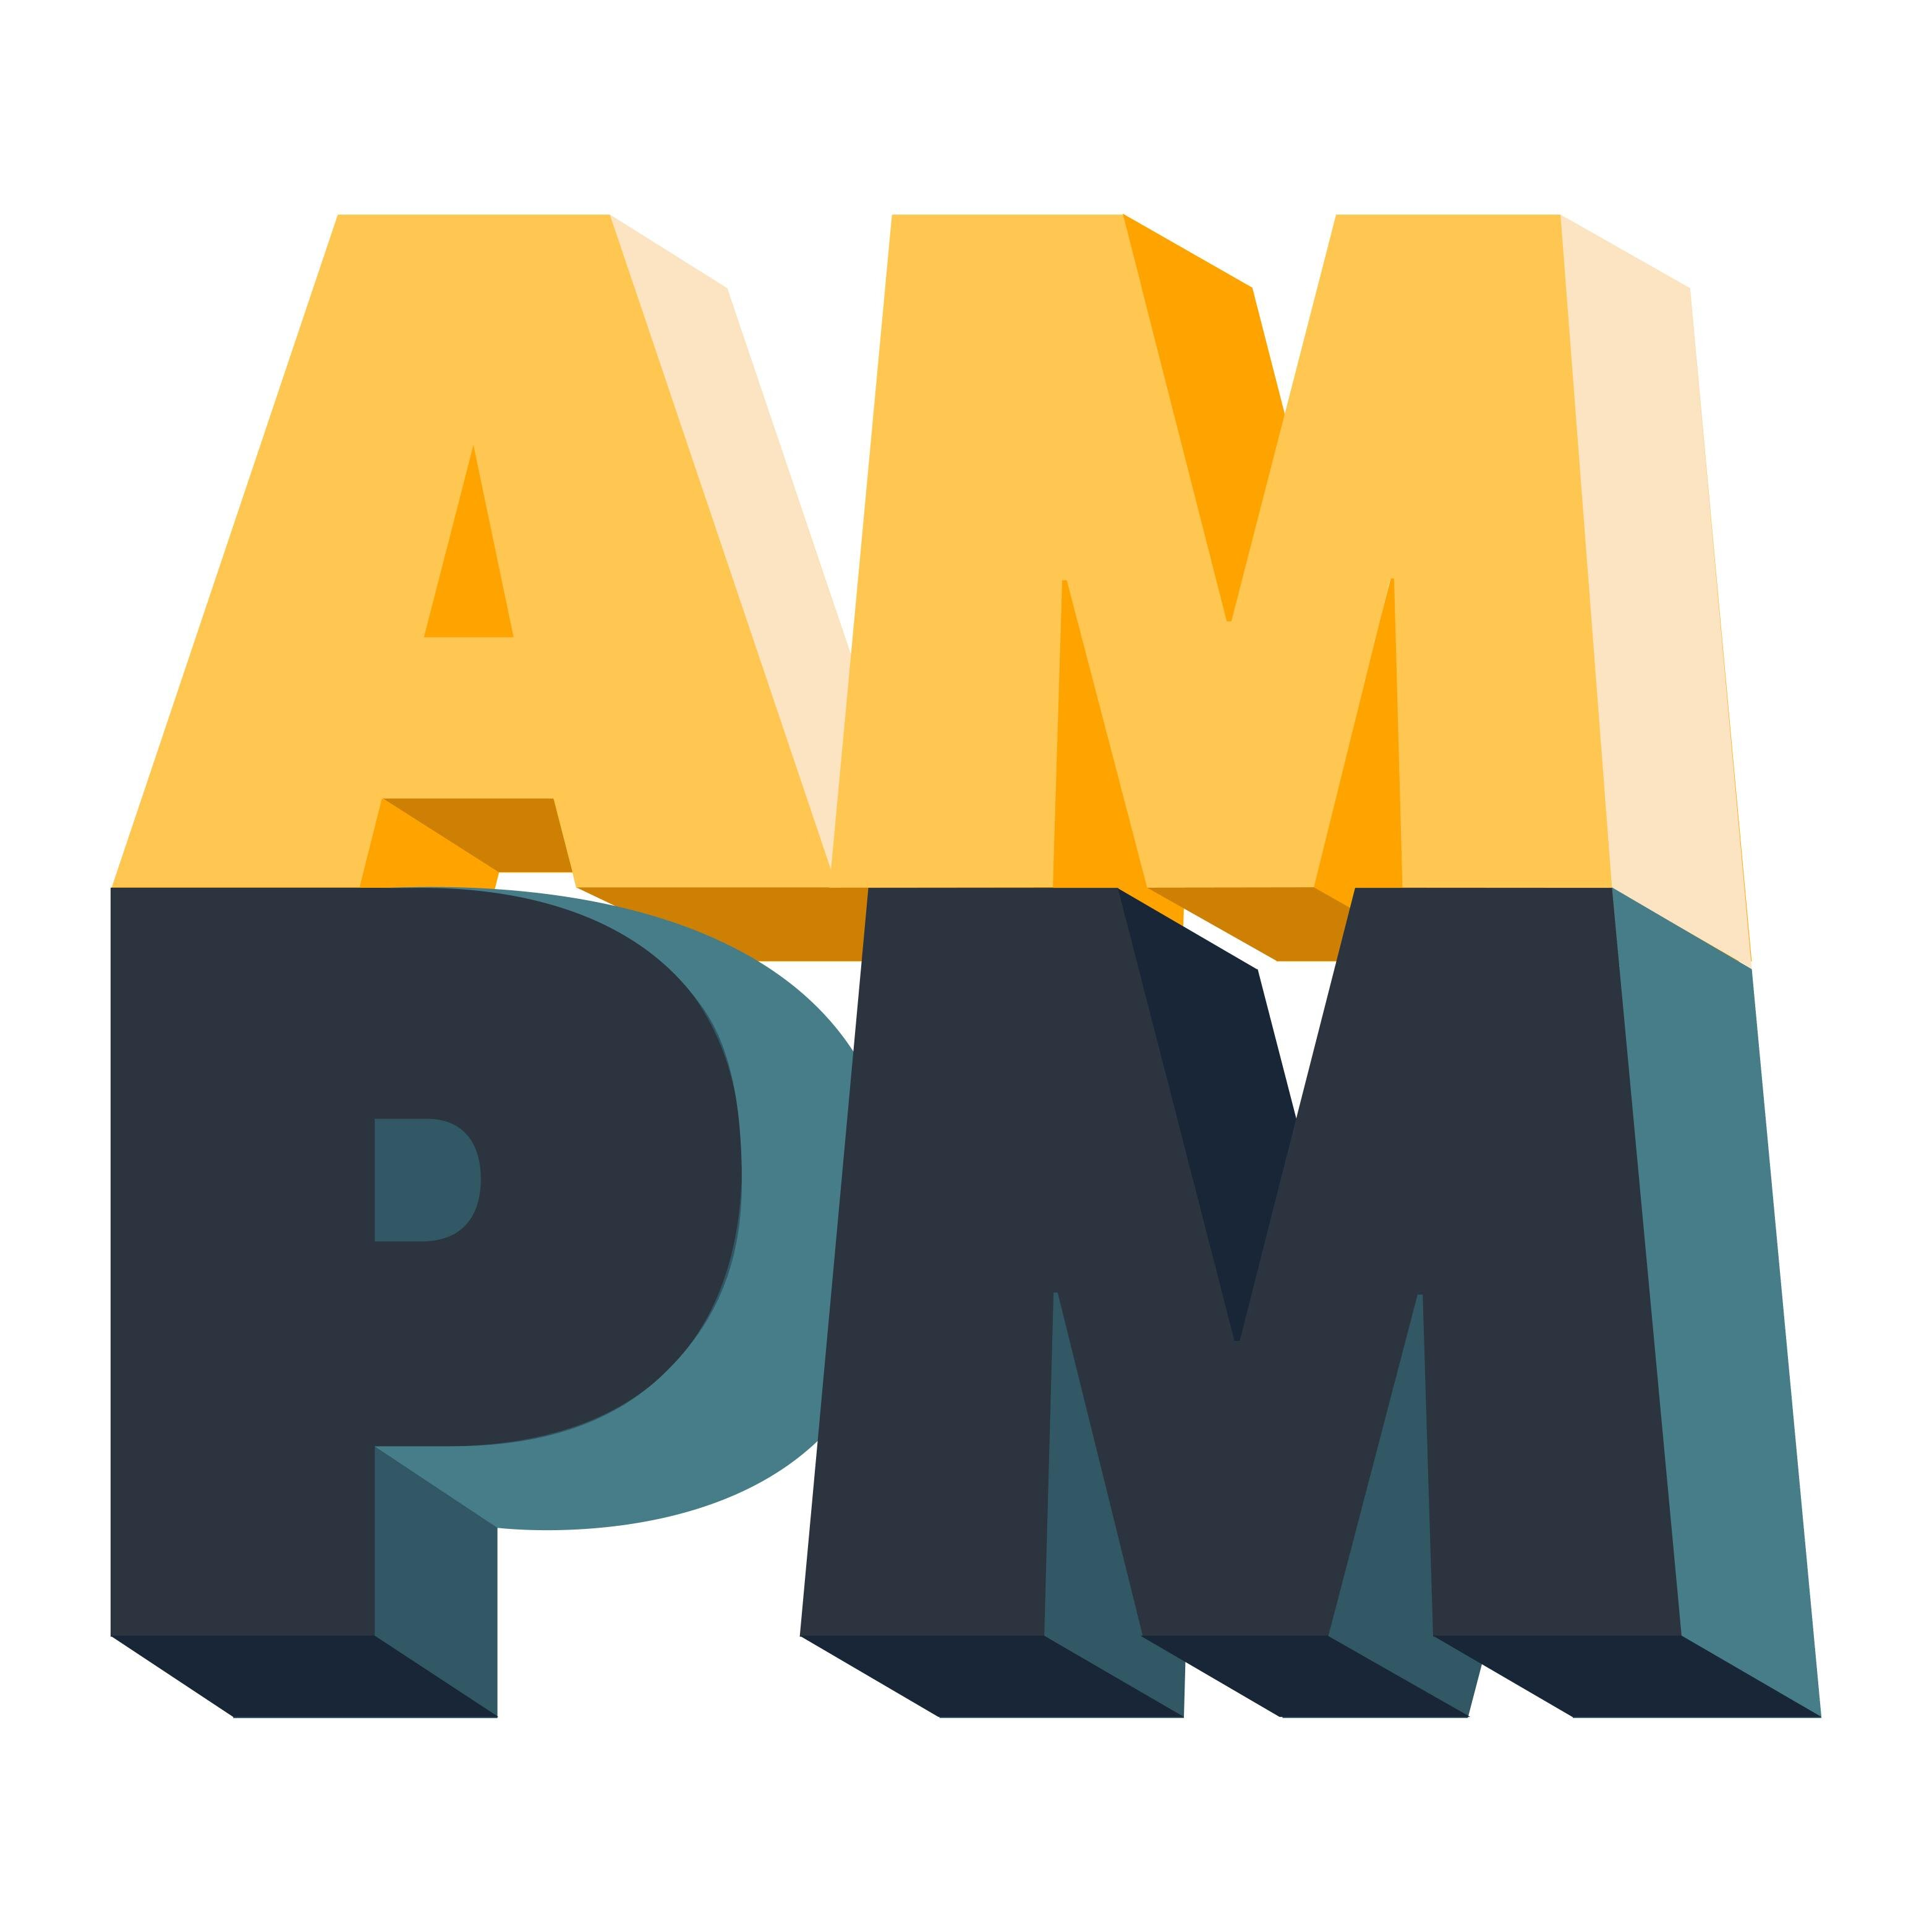 Am pm ampmdc twitter - Ampm ophanging ...